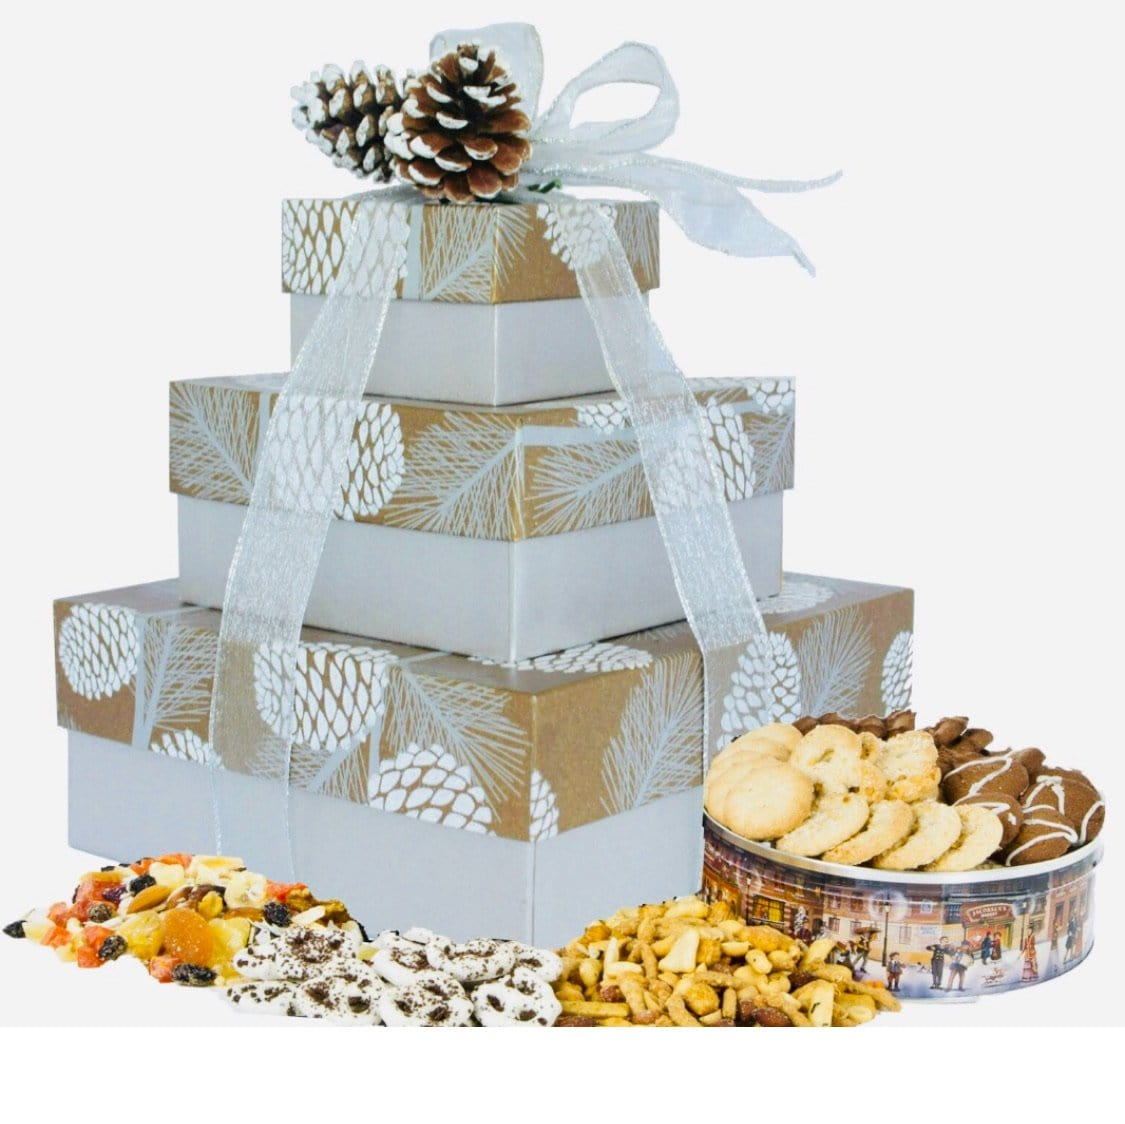 Shimmering Pinecone*New - Gift Baskets By Design SB, Inc.